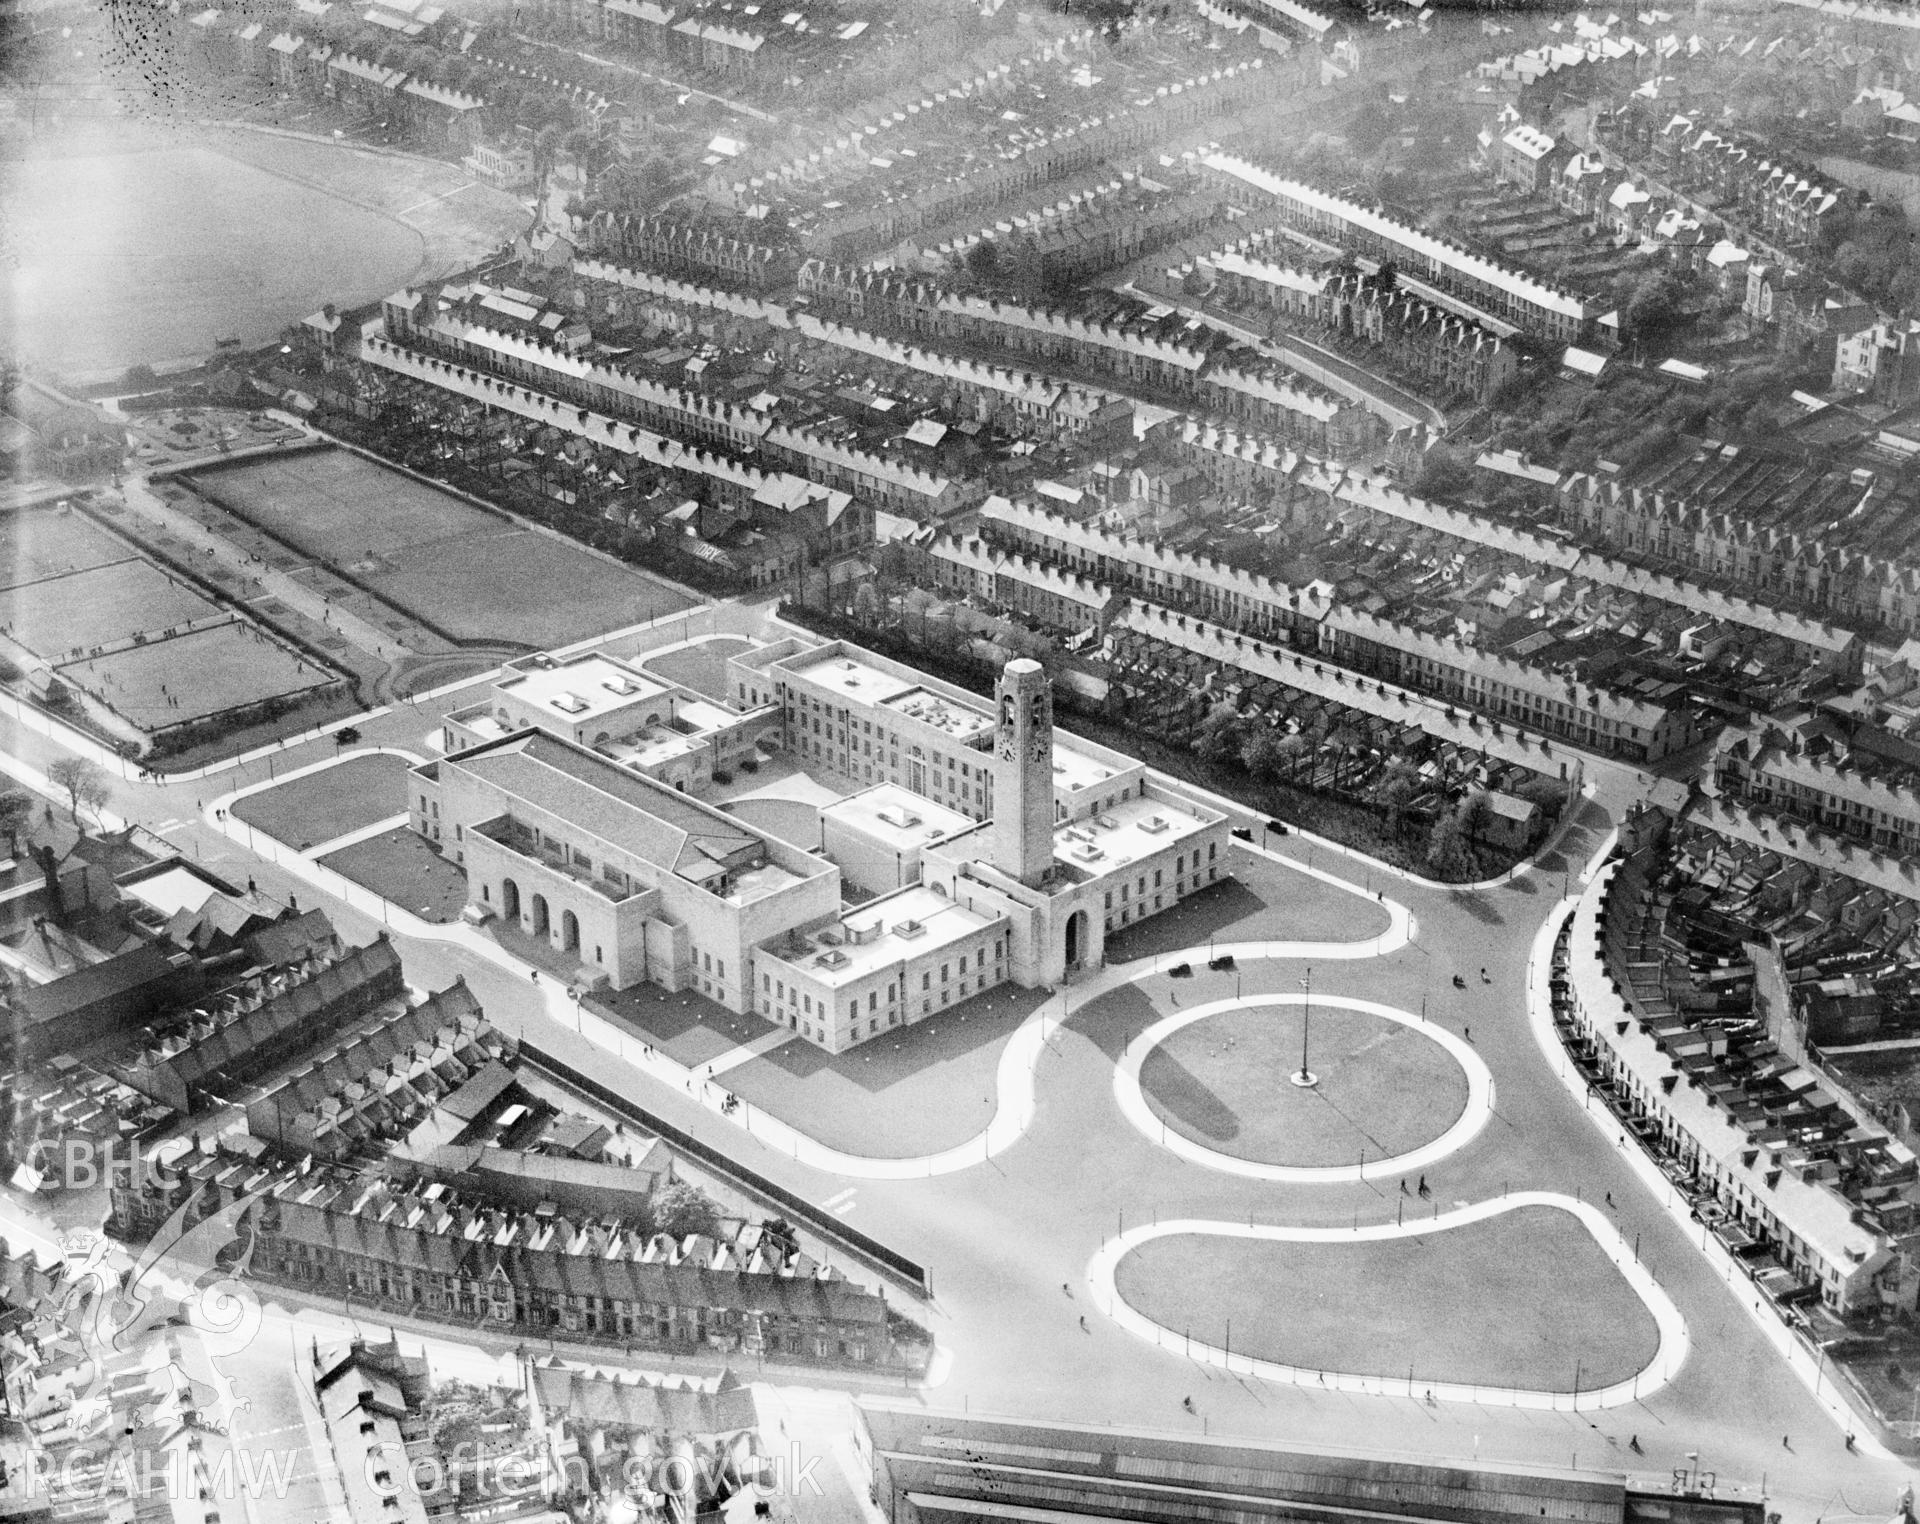 View of newly built civic centre, Swansea, oblique aerial view. 5?x4? black and white glass plate negative.